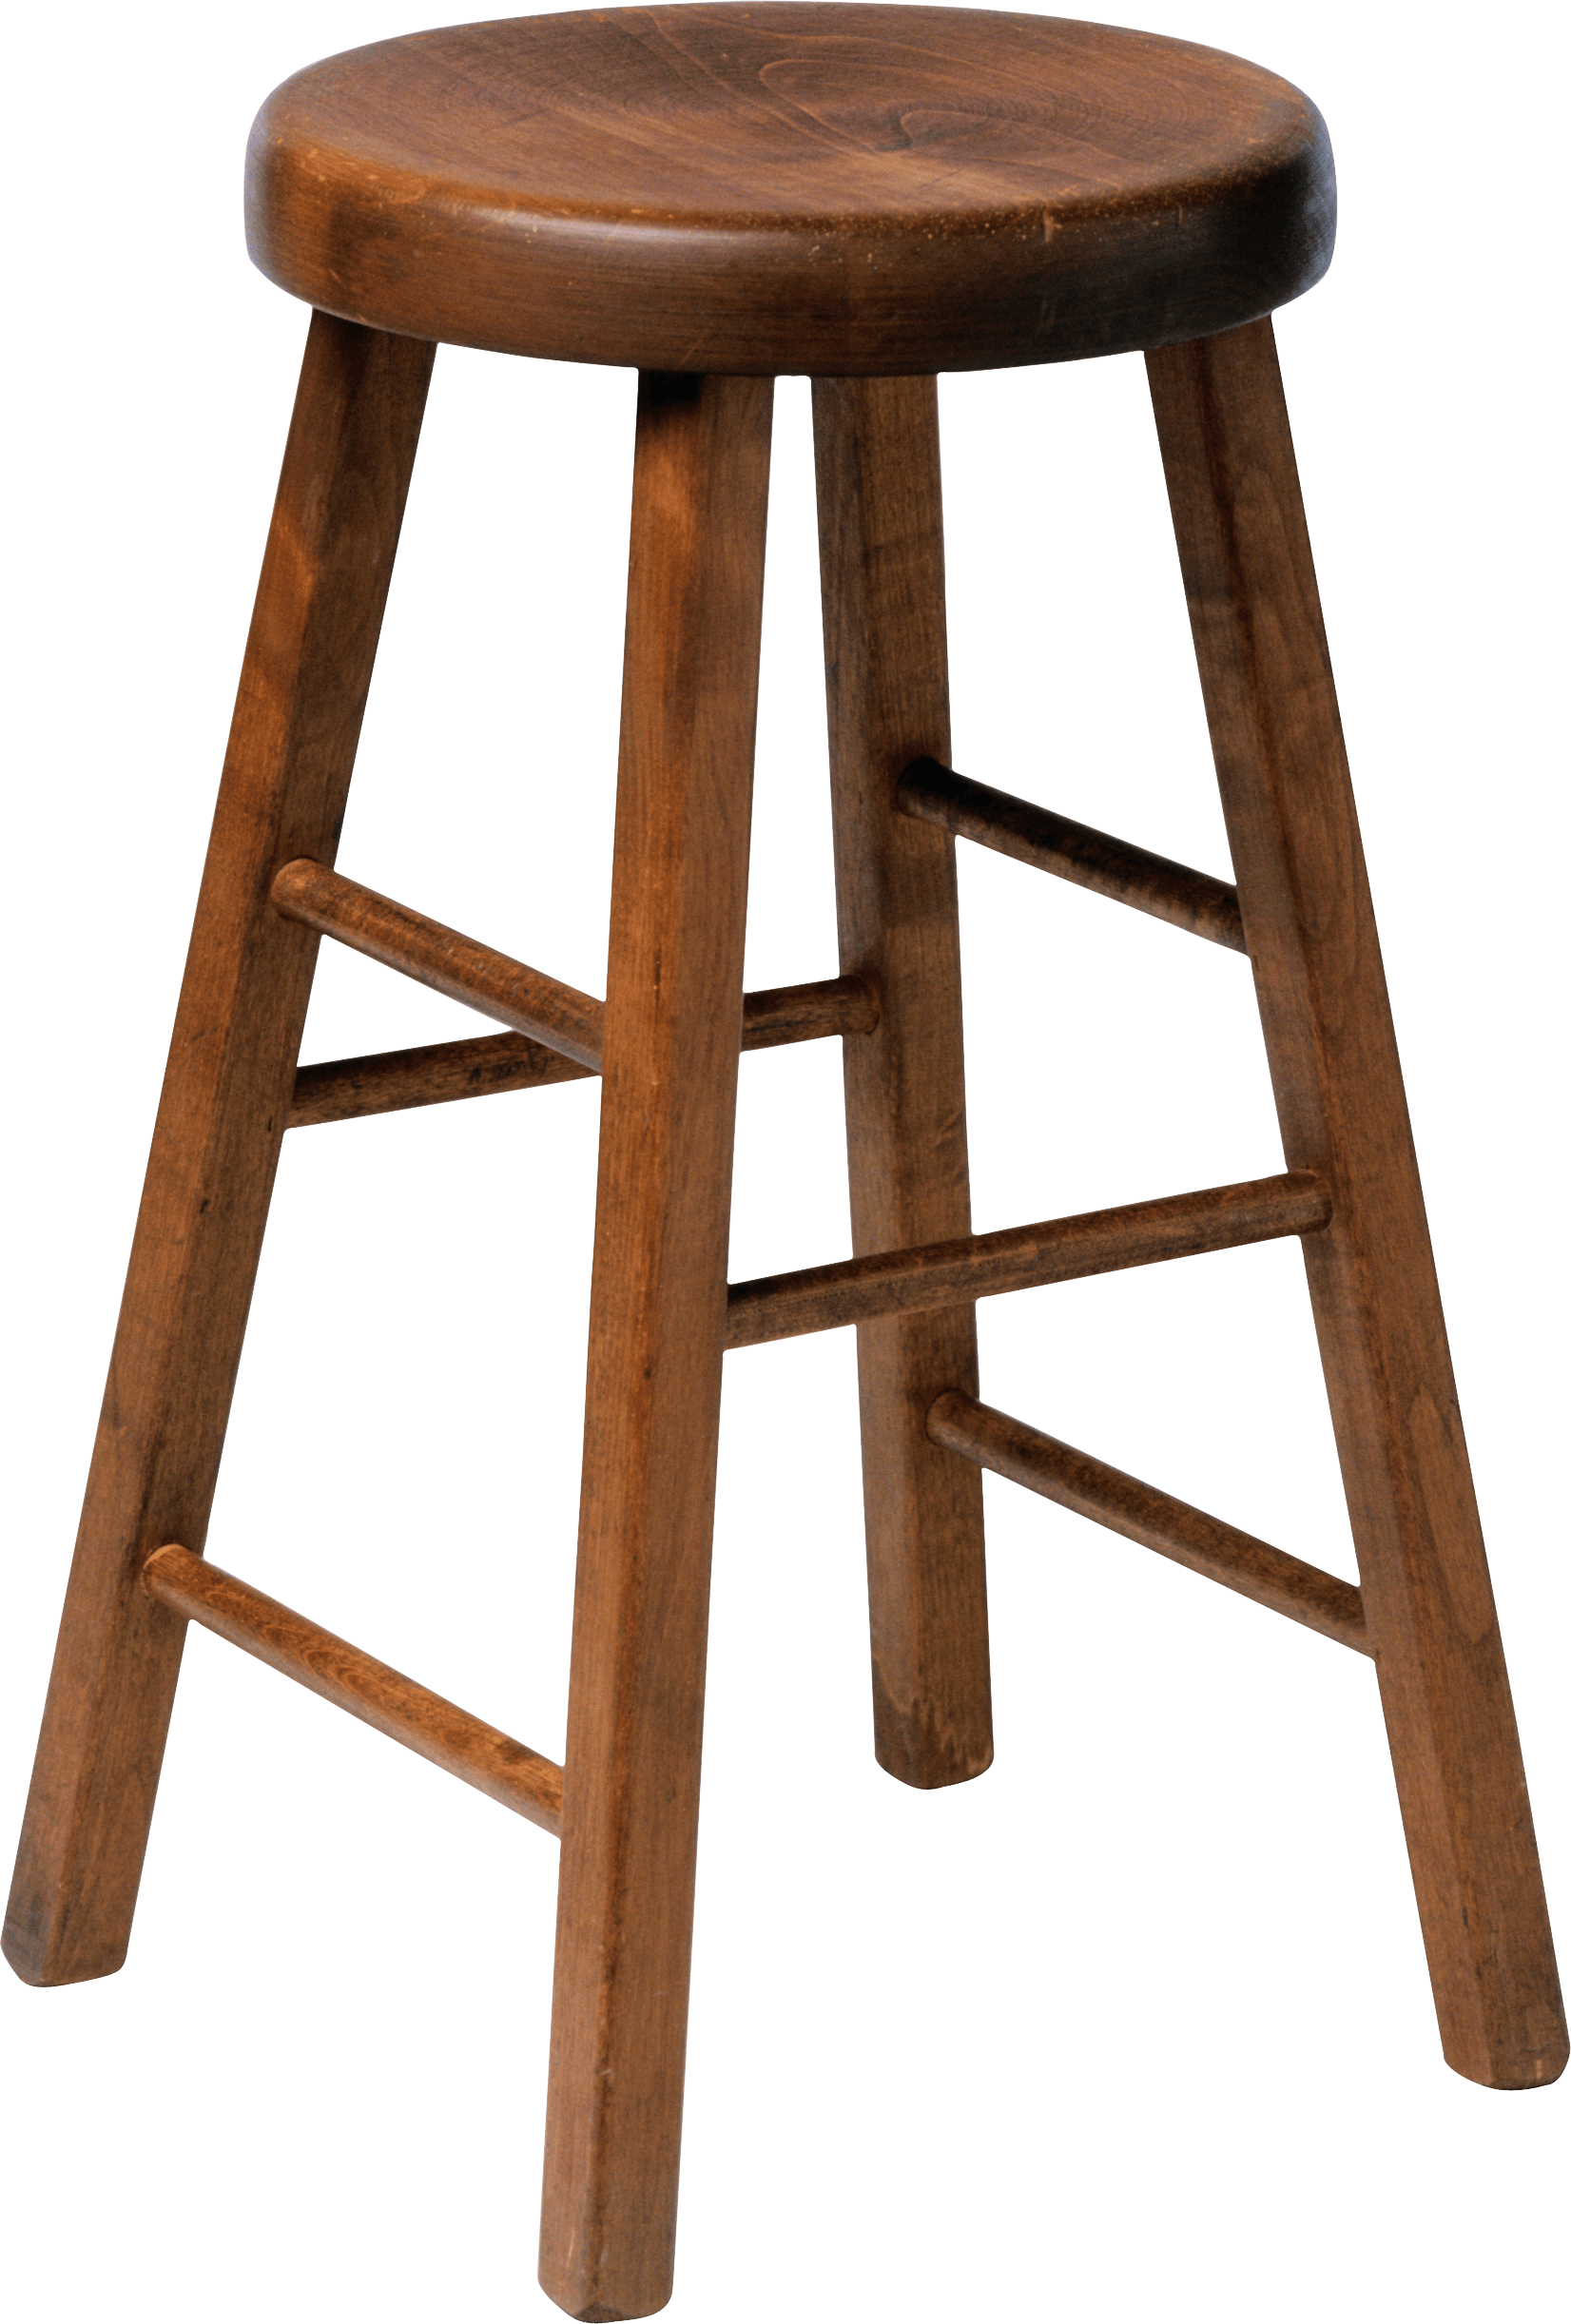 Wooden Stool Chair Transpa Png